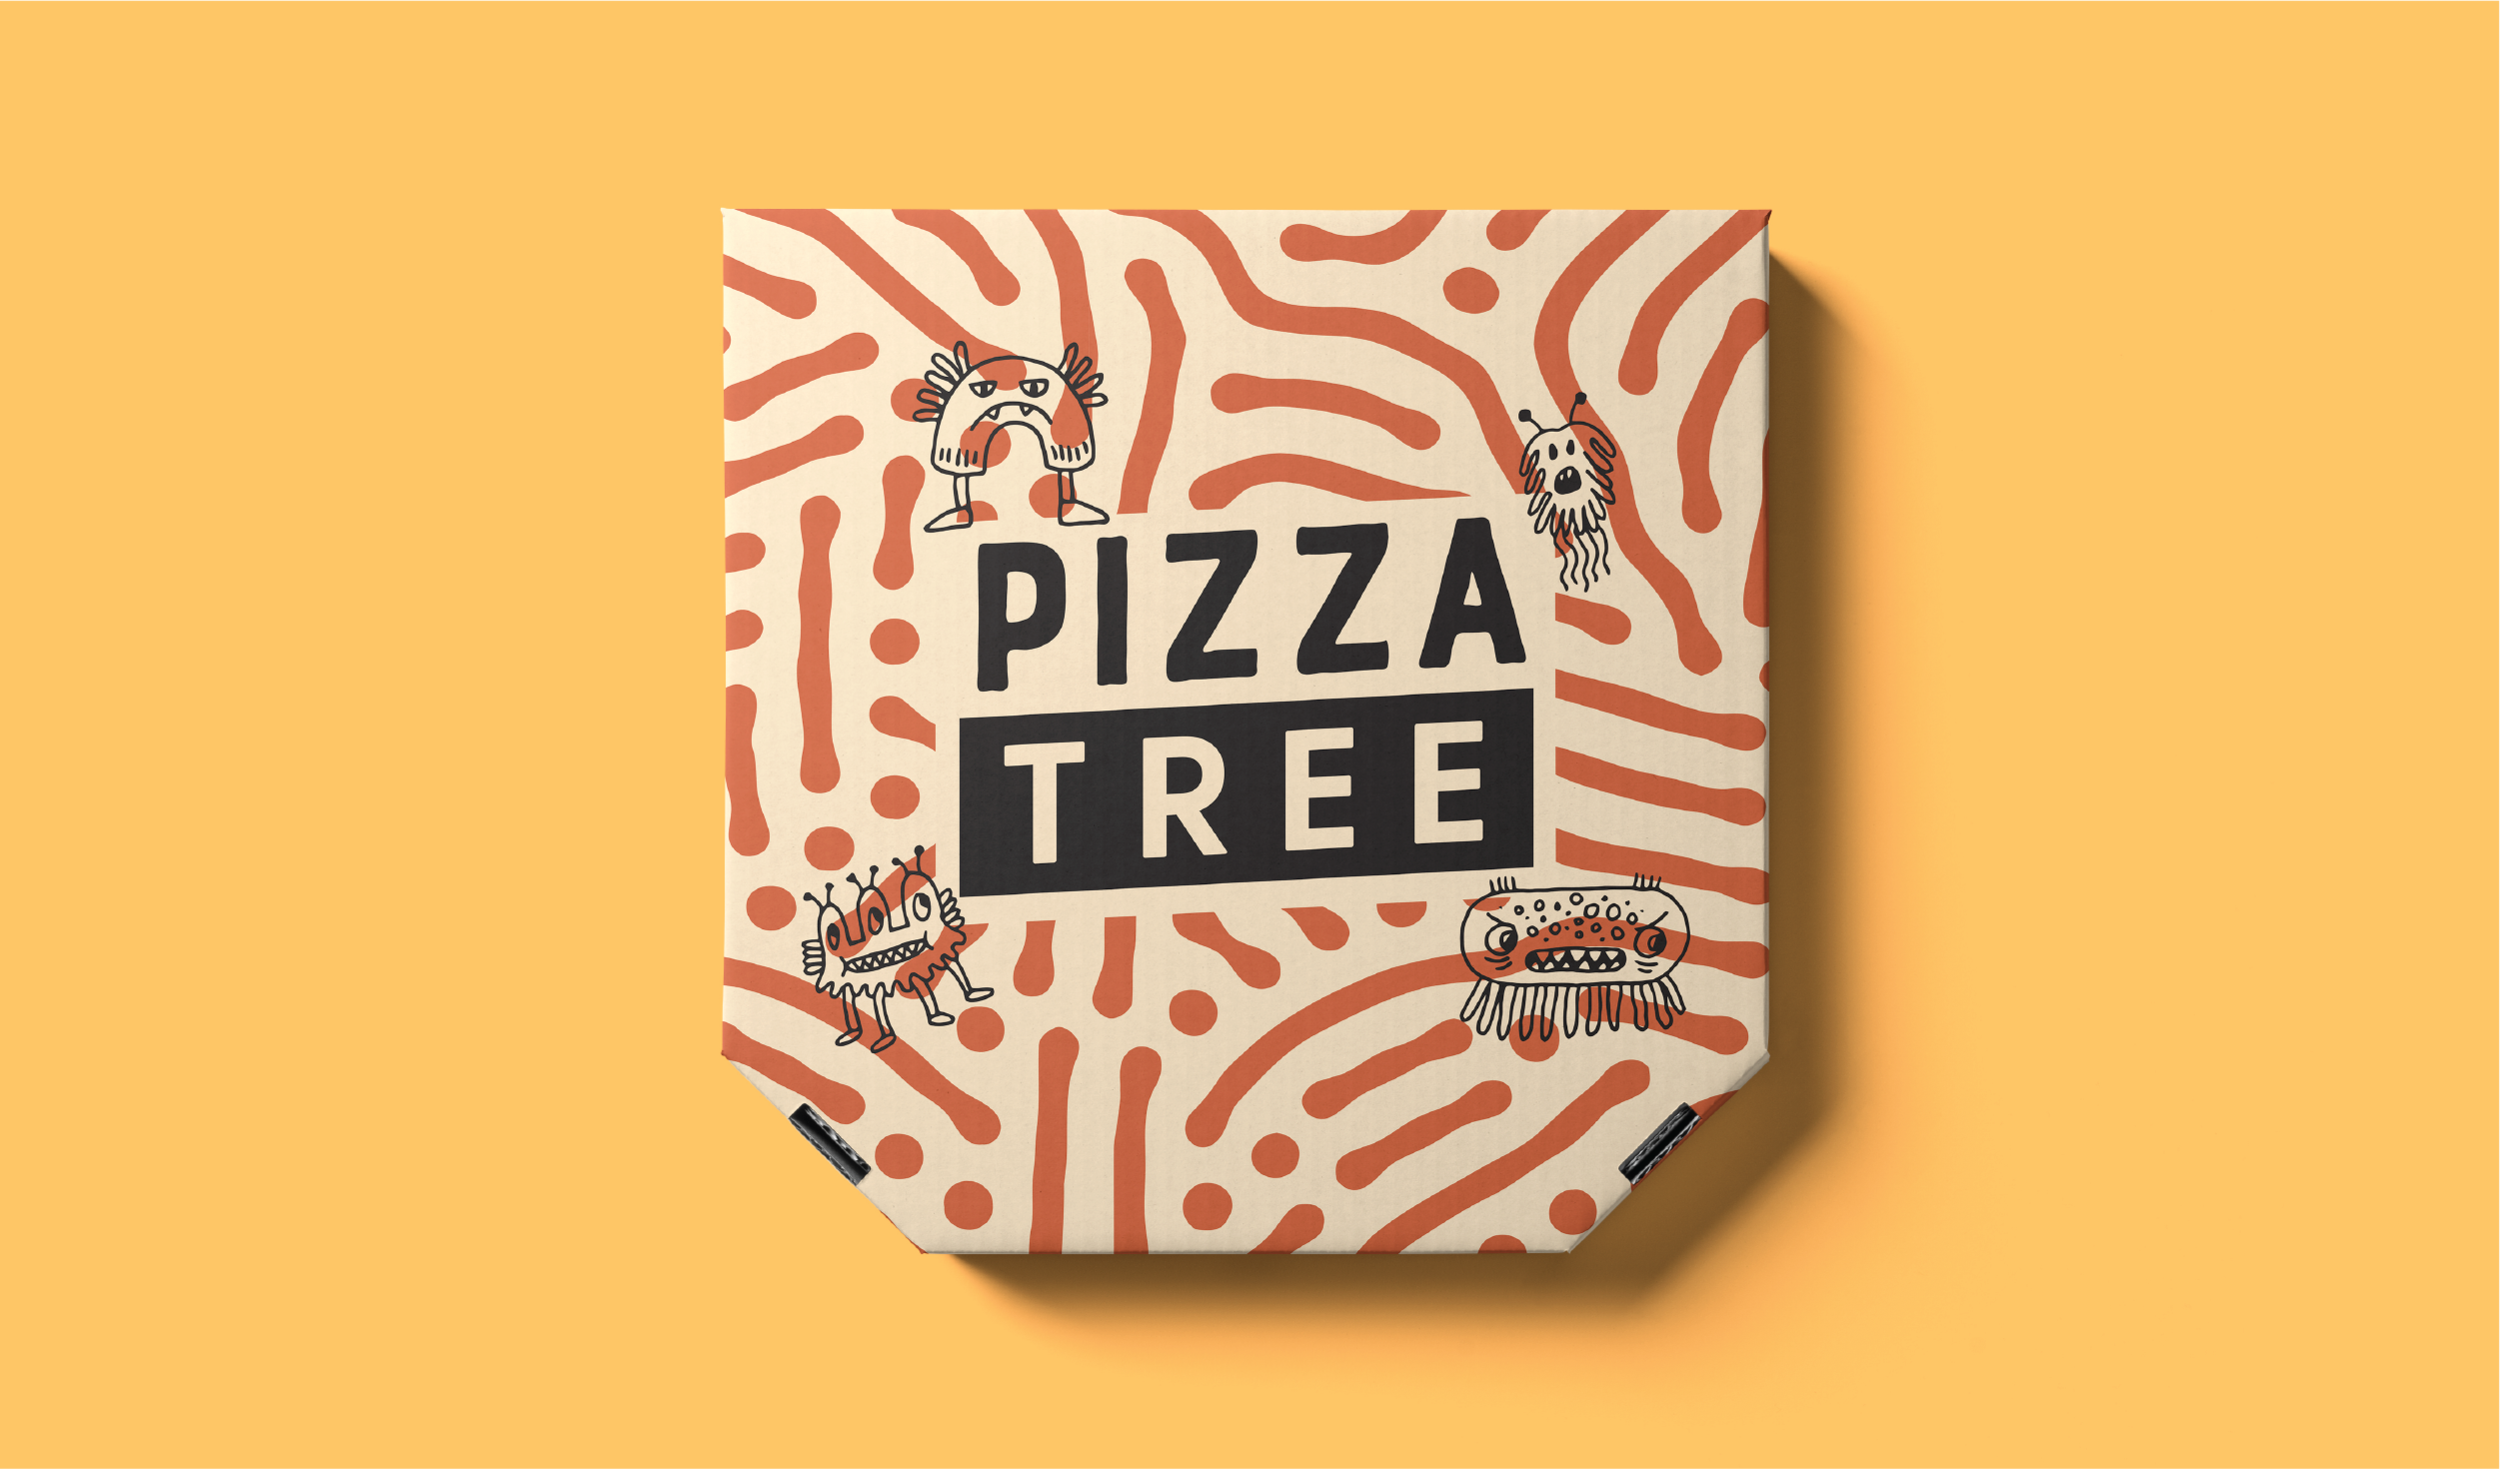 CaseStudyBrandBoard_PizzaTree_Pizza Box Mockup.png